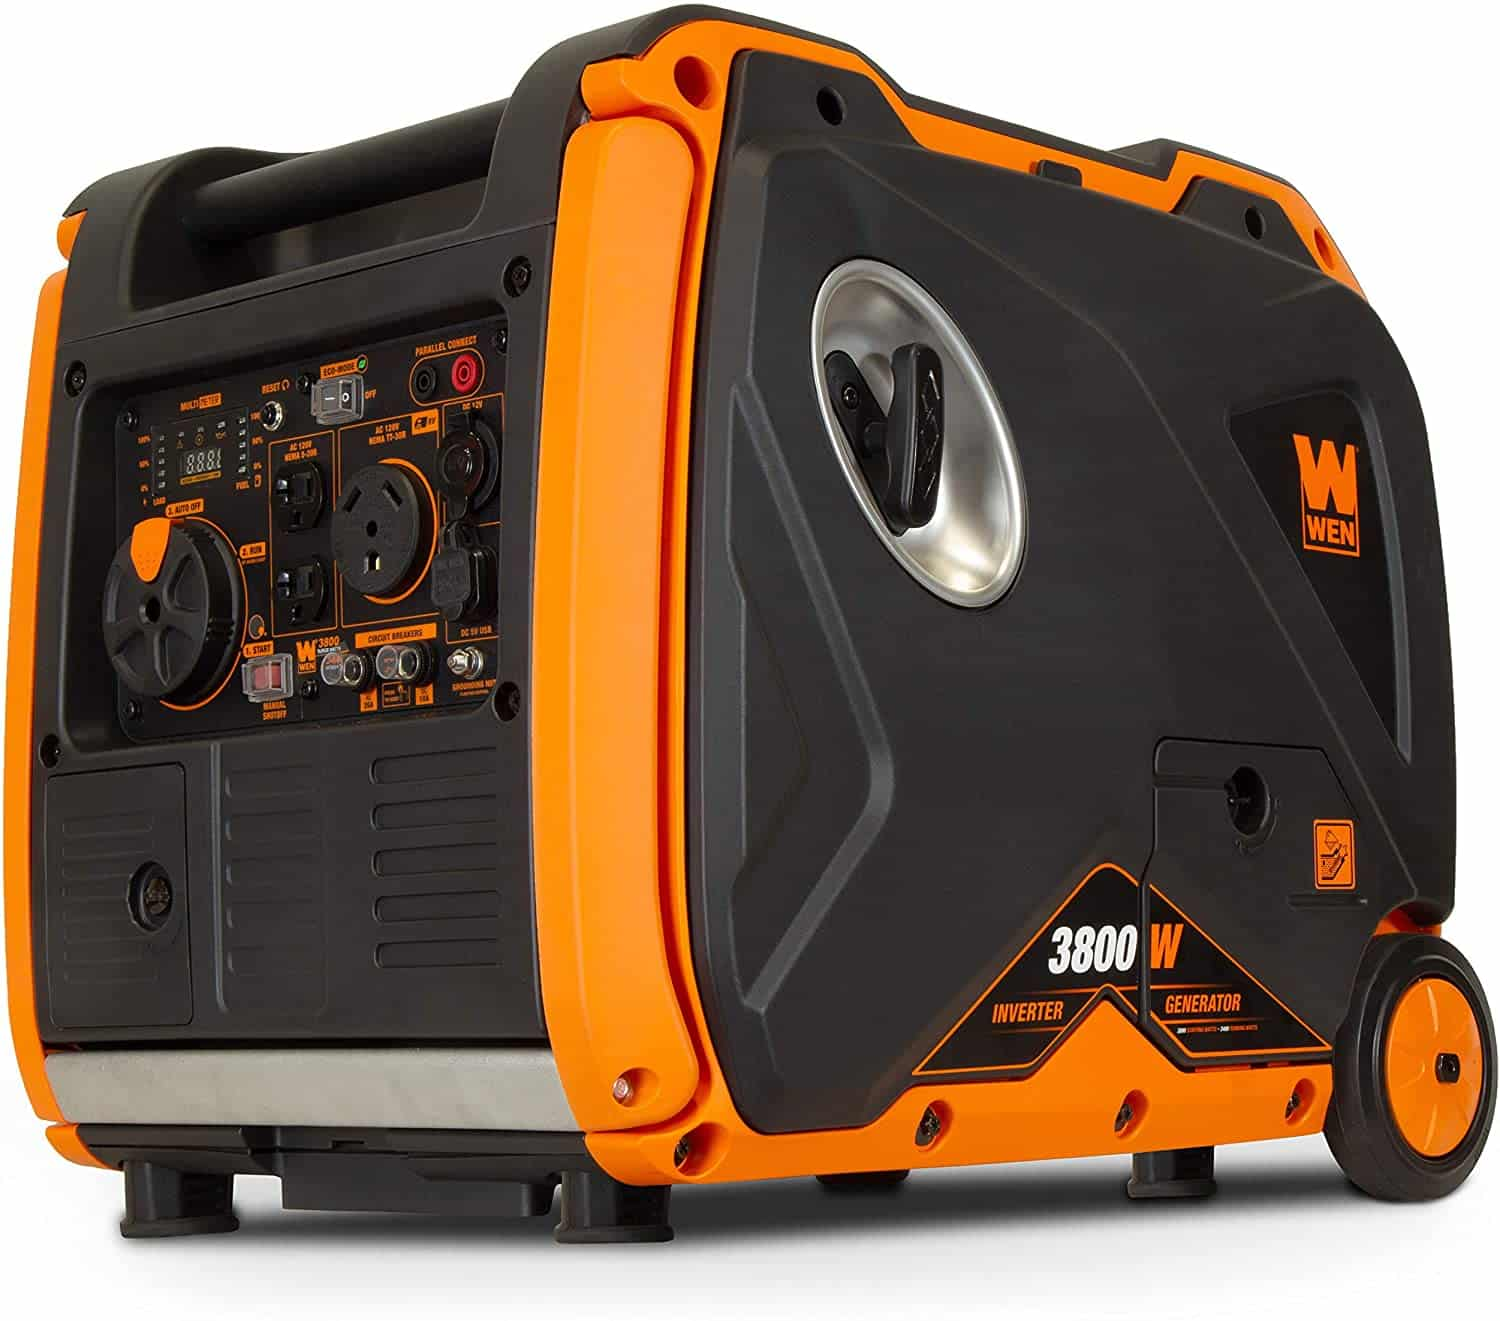 WEN 56380i Super Quiet 3800-Watt Portable Inverter Generator with Fuel Shut-Off and Electric Start